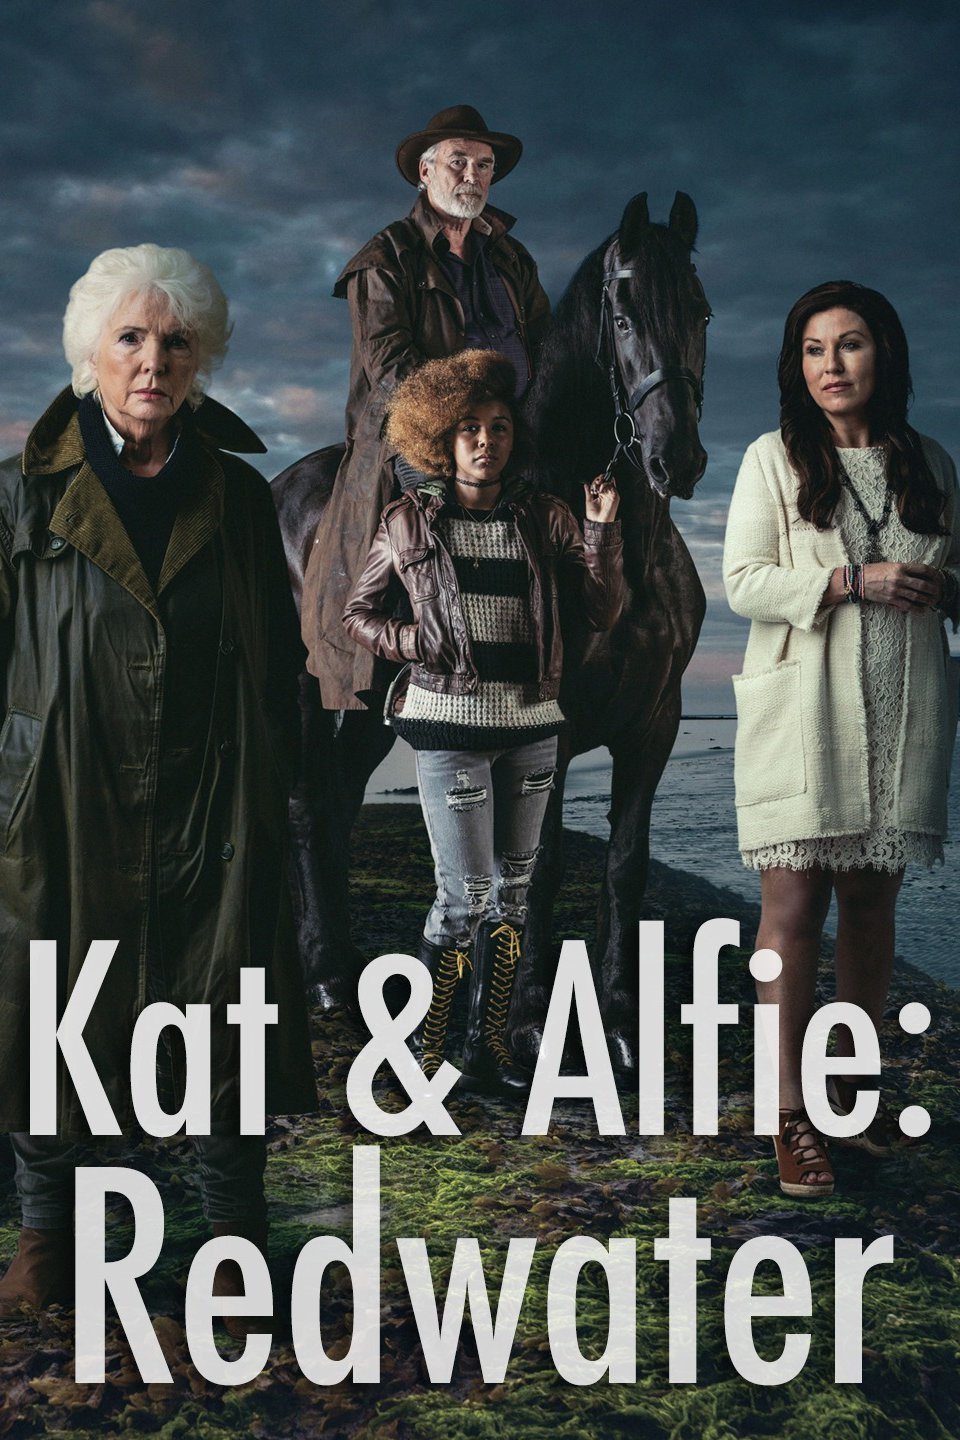 Susan Ateh in Redwater